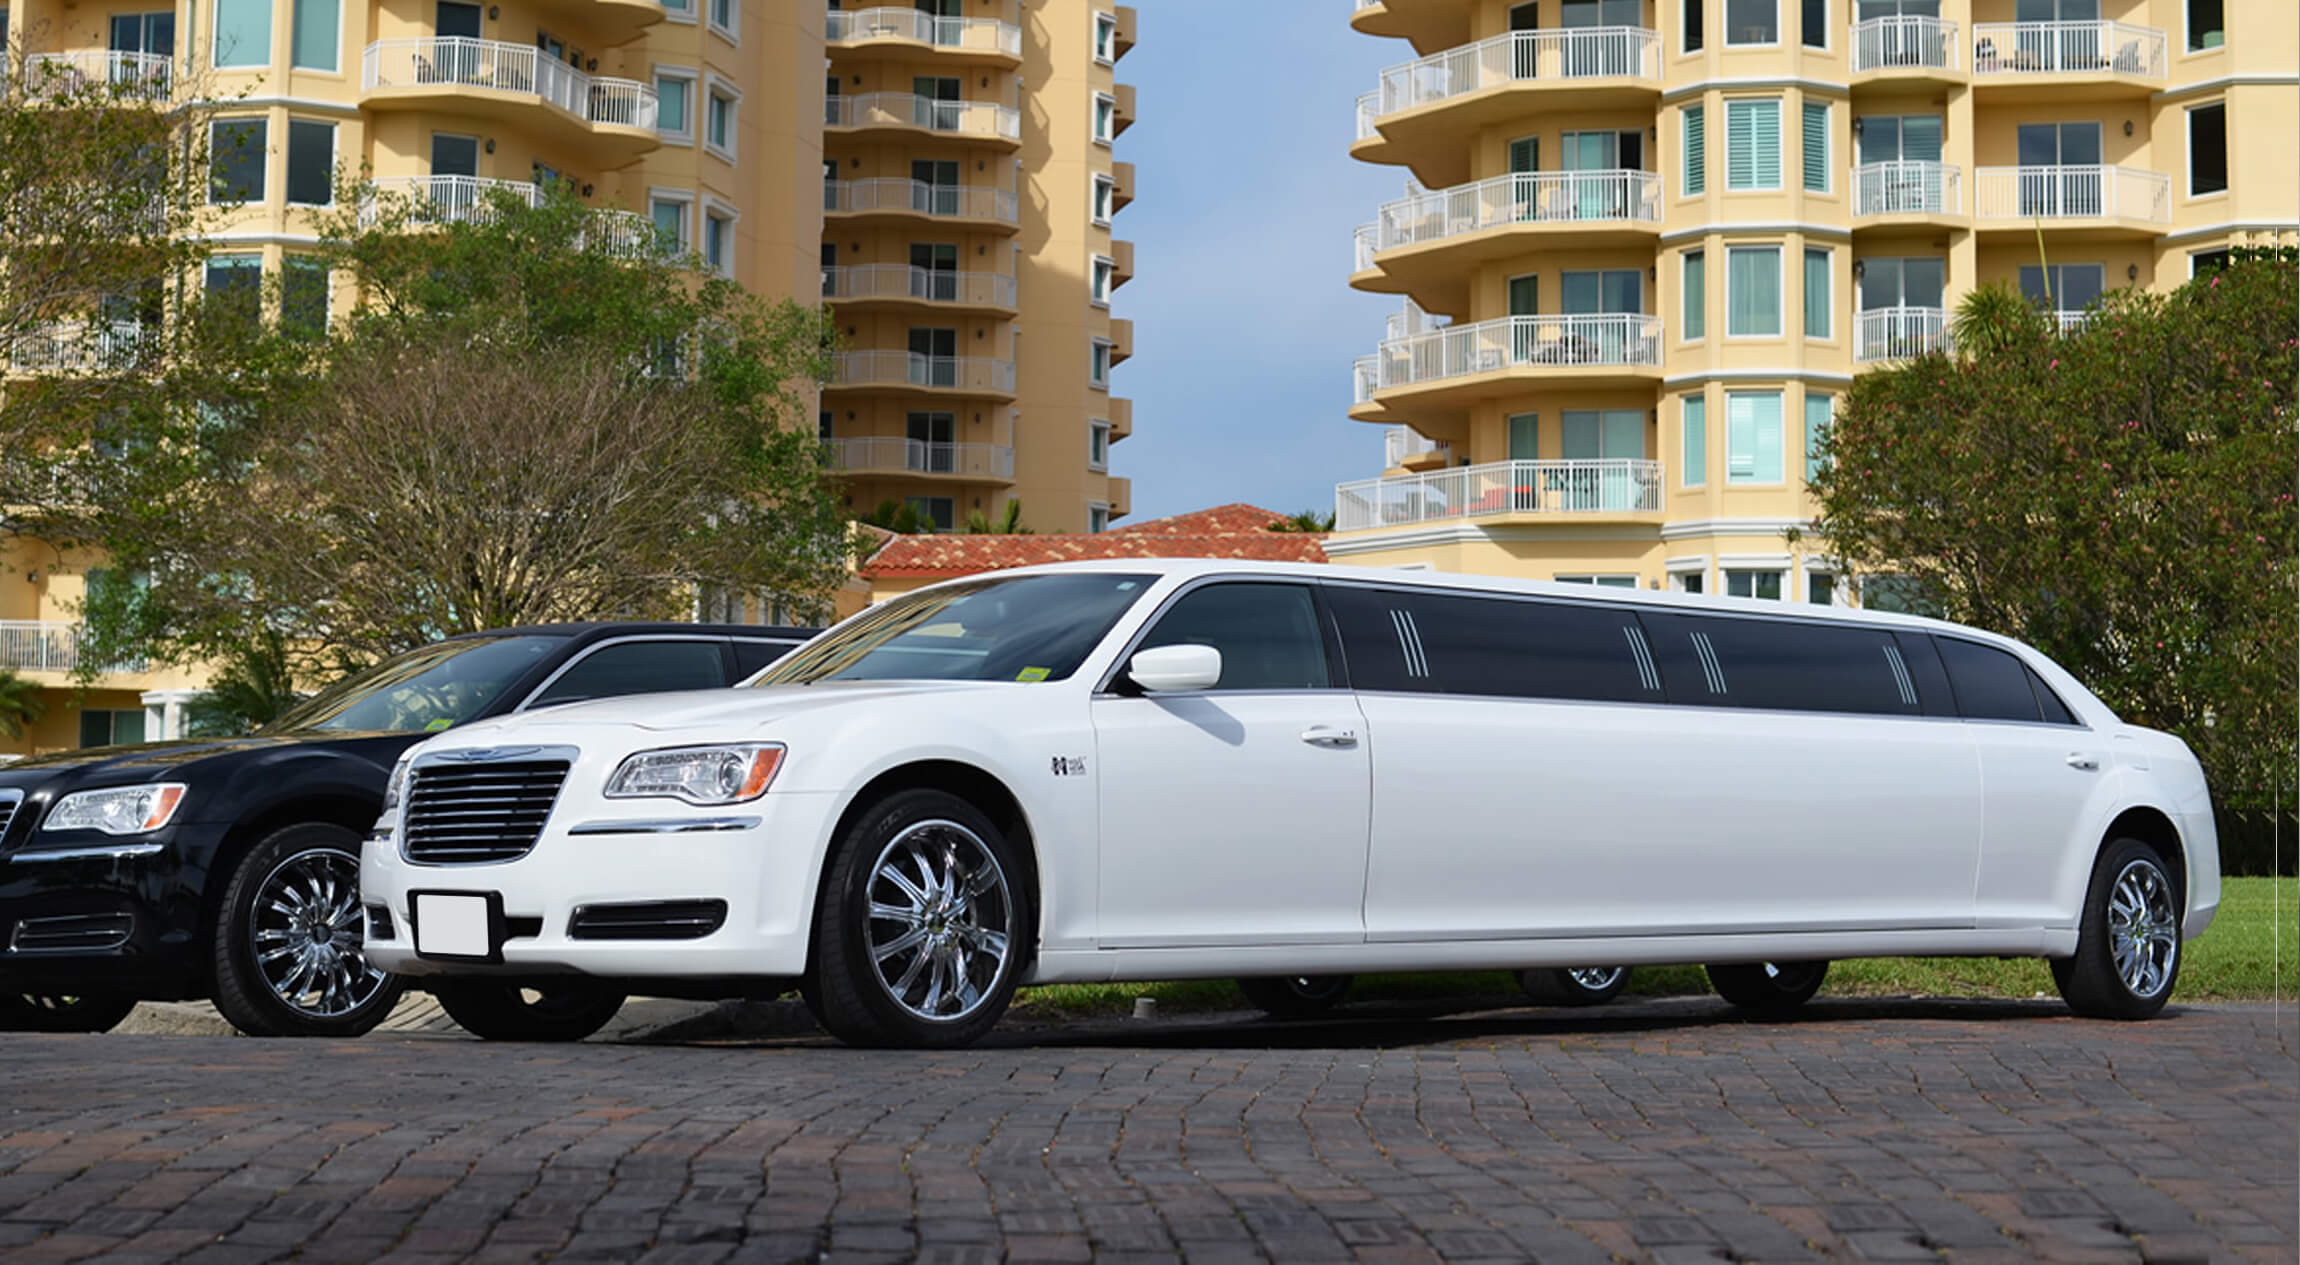 Limo Pack Luxury Wedding Cars Sydney